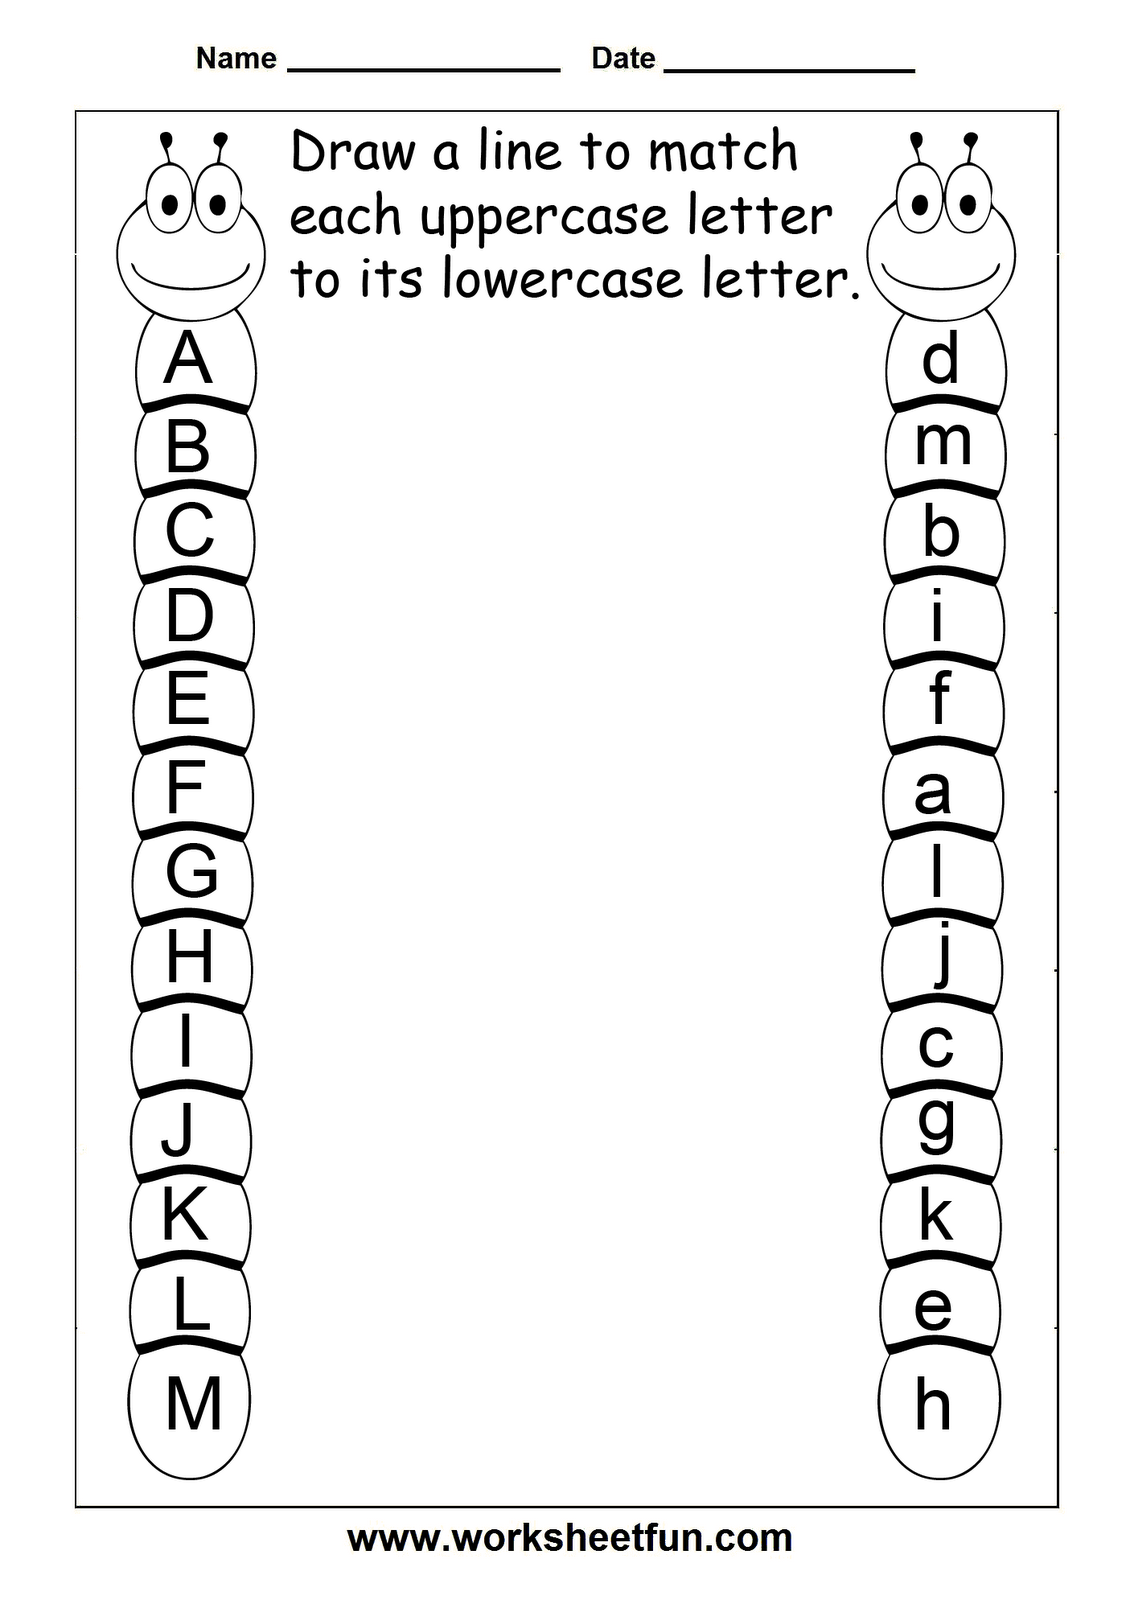 Worksheets Pre-k Worksheets Printables free printable worksheets prek 4th kinder pinterest 4th